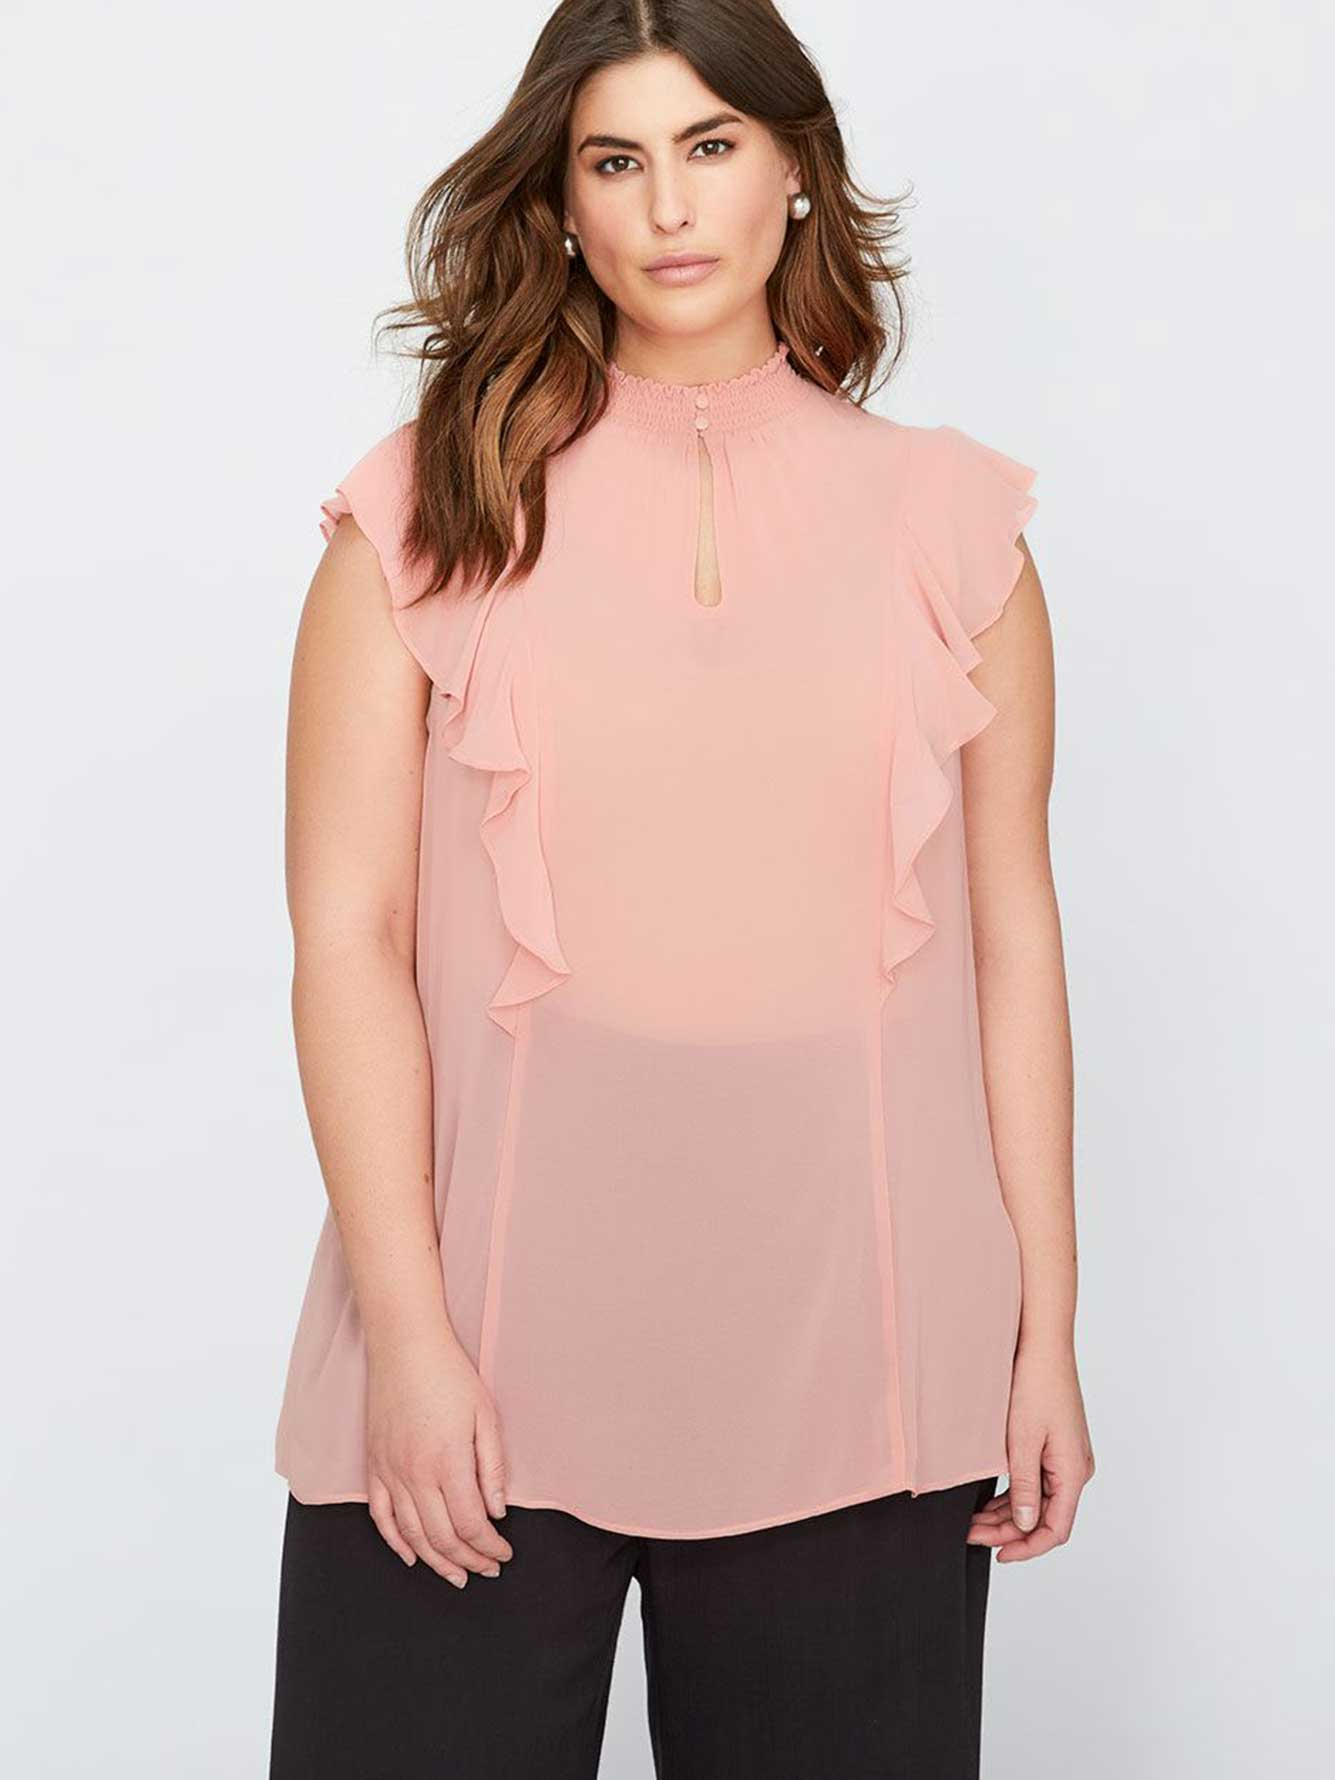 6291fb69e262c9 Pink Ruffle Blouse Plus Size « Alzheimer's Network of Oregon